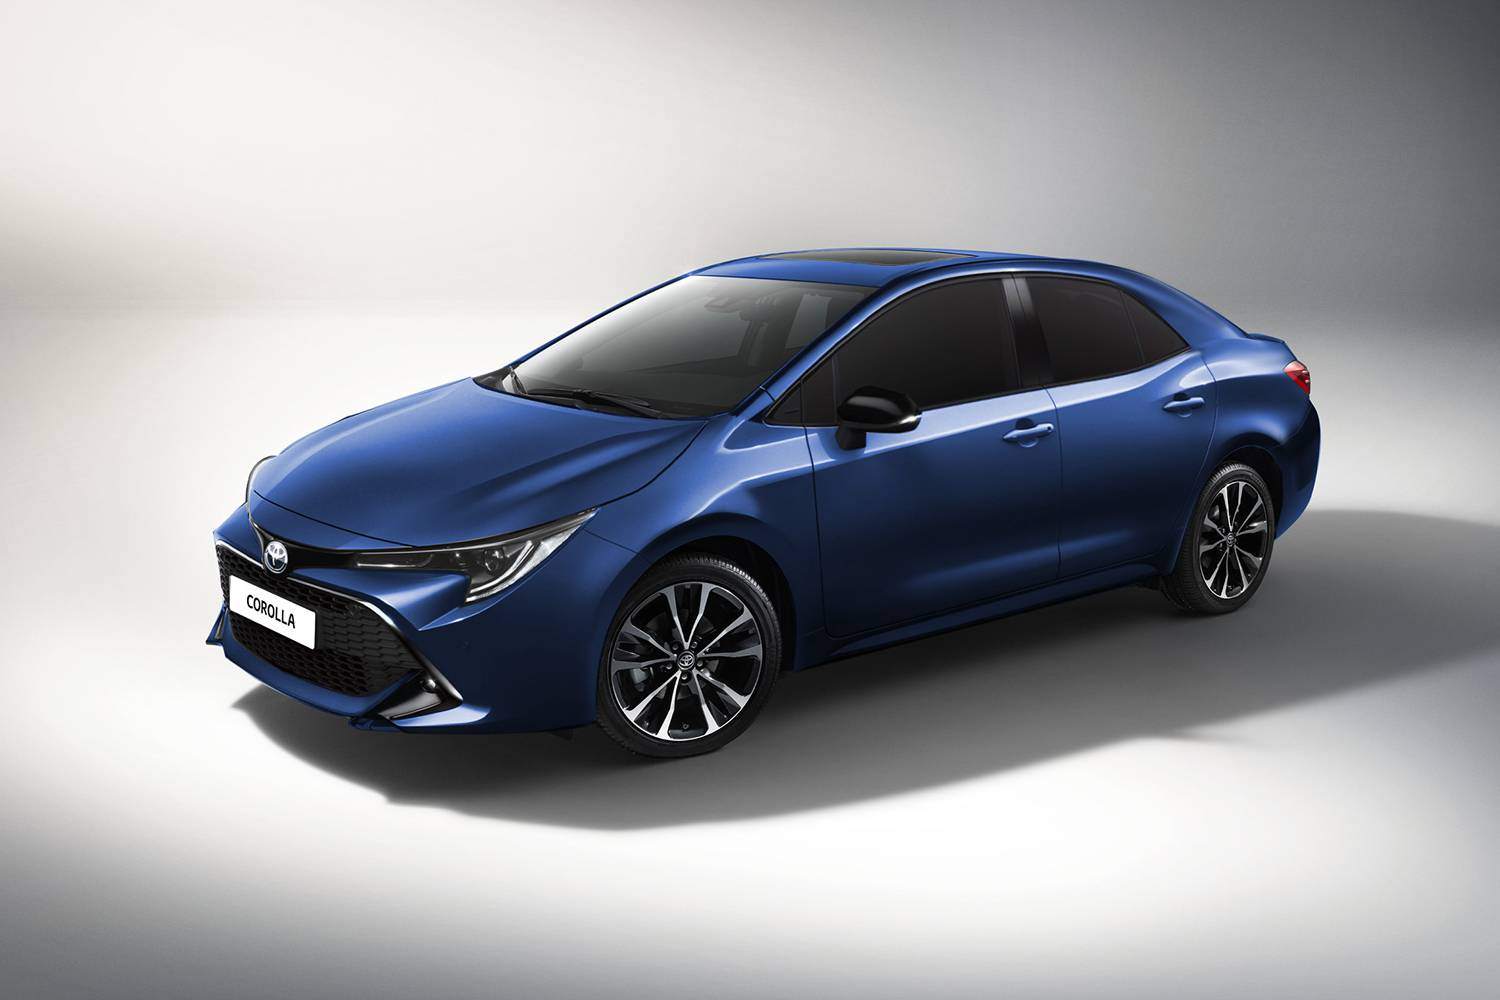 Used Toyota Prius For Sale >> Toyota Corolla 2019 - what to expect - PakWheels Blog